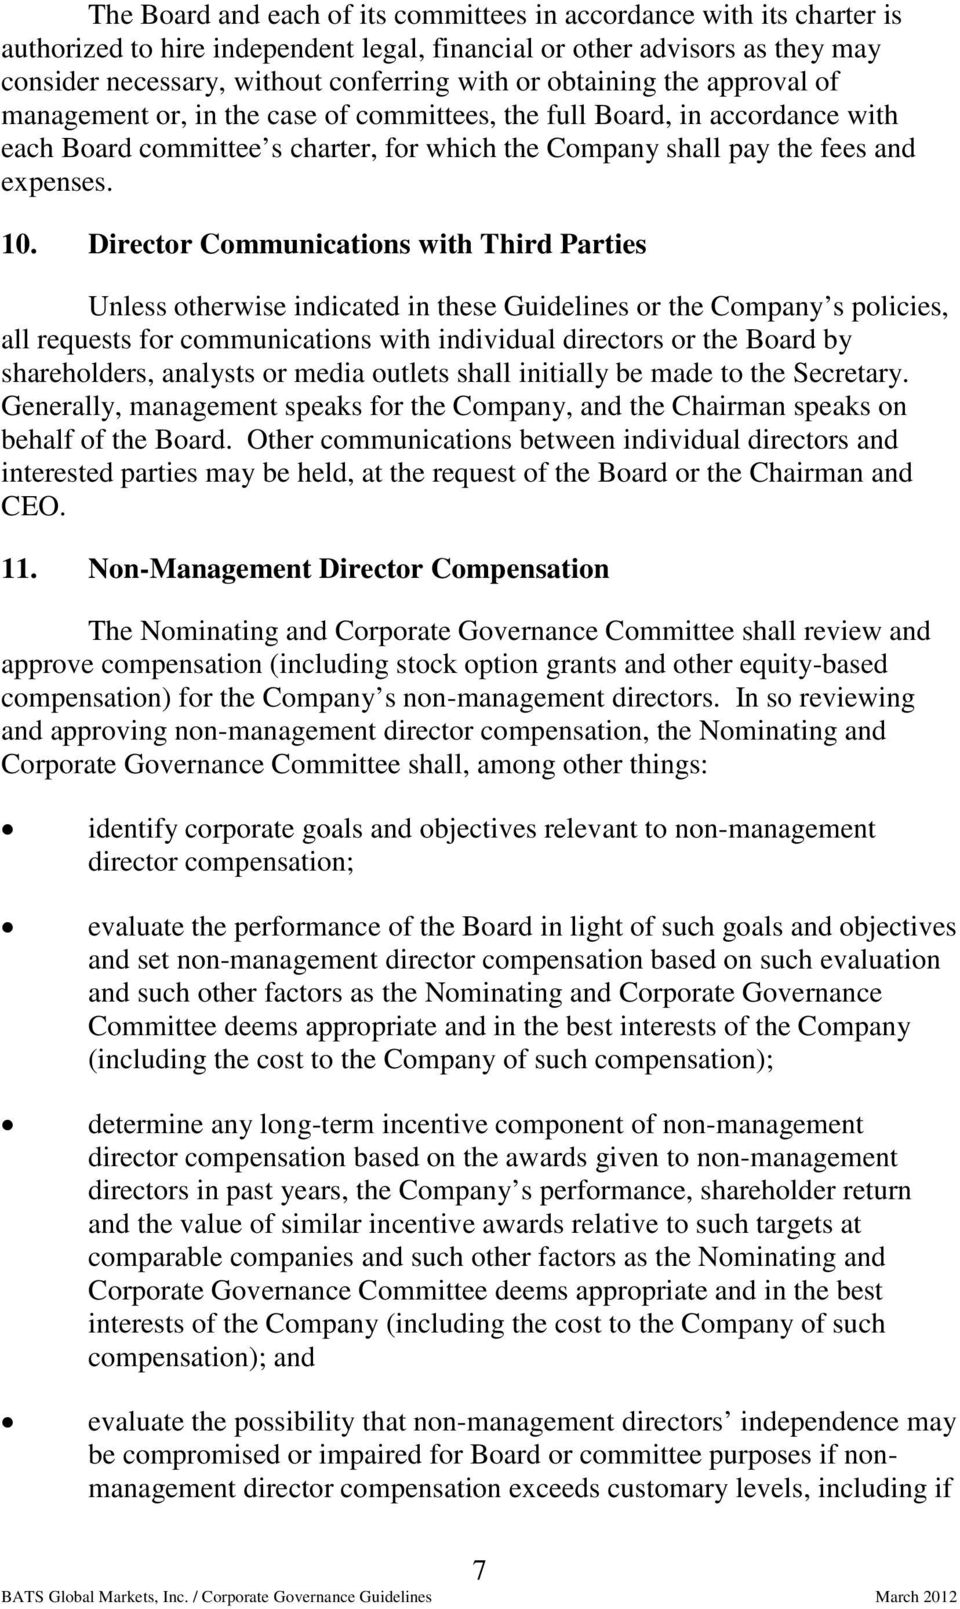 Director Communications with Third Parties Unless otherwise indicated in these Guidelines or the Company s policies, all requests for communications with individual directors or the Board by